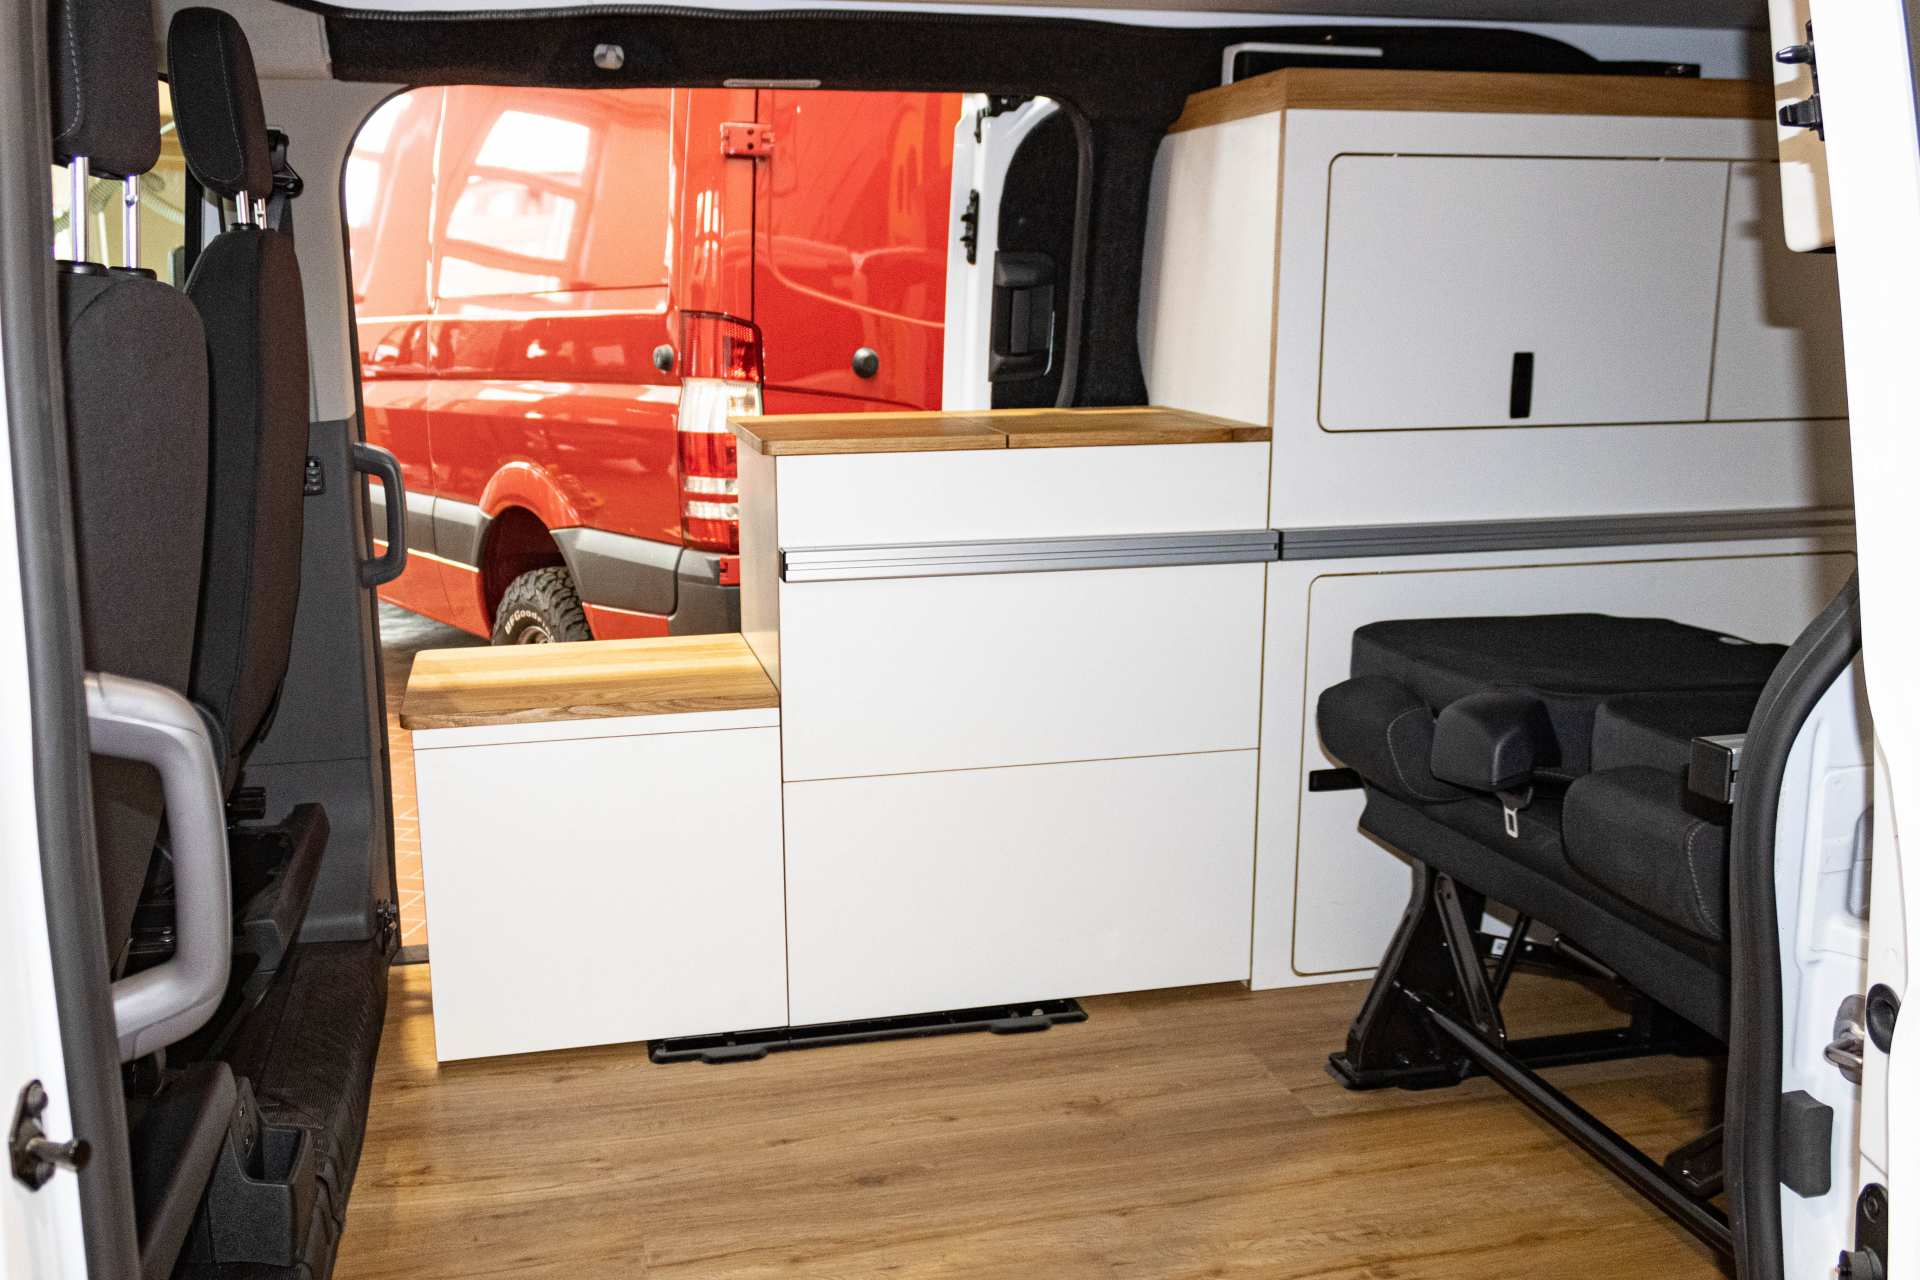 Individualausbau: EXPEDITION Ford Transit Custom, langer Radstand - 16